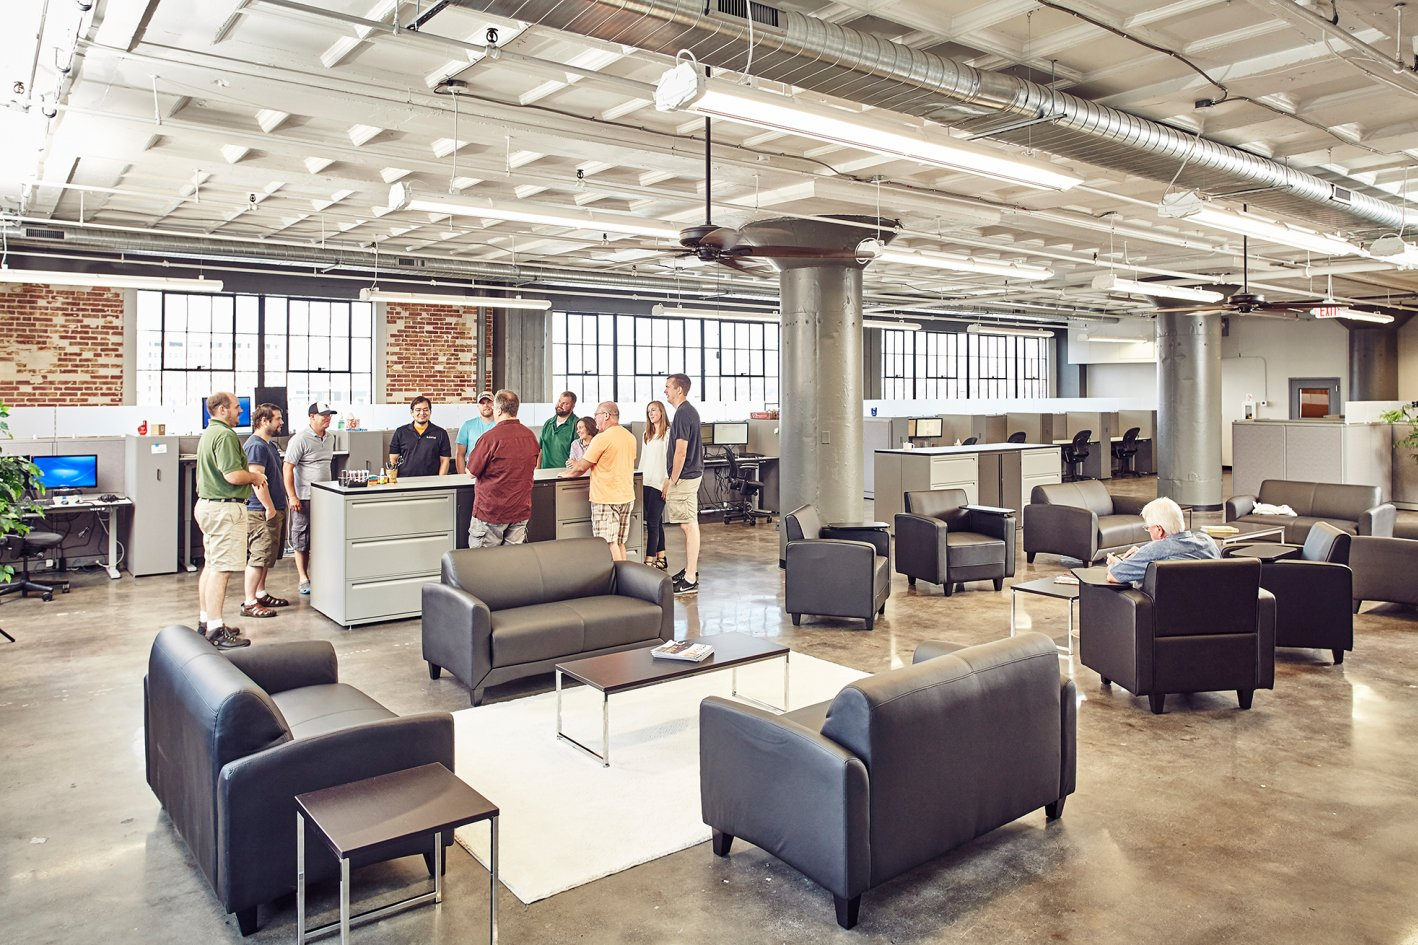 Large Office Space In In The Juxtaposing Sleek Modern Design And Large Industrial Windows Bringing An Open Contemporary Aesthetic To Stl Technology District Big Space Globe Building